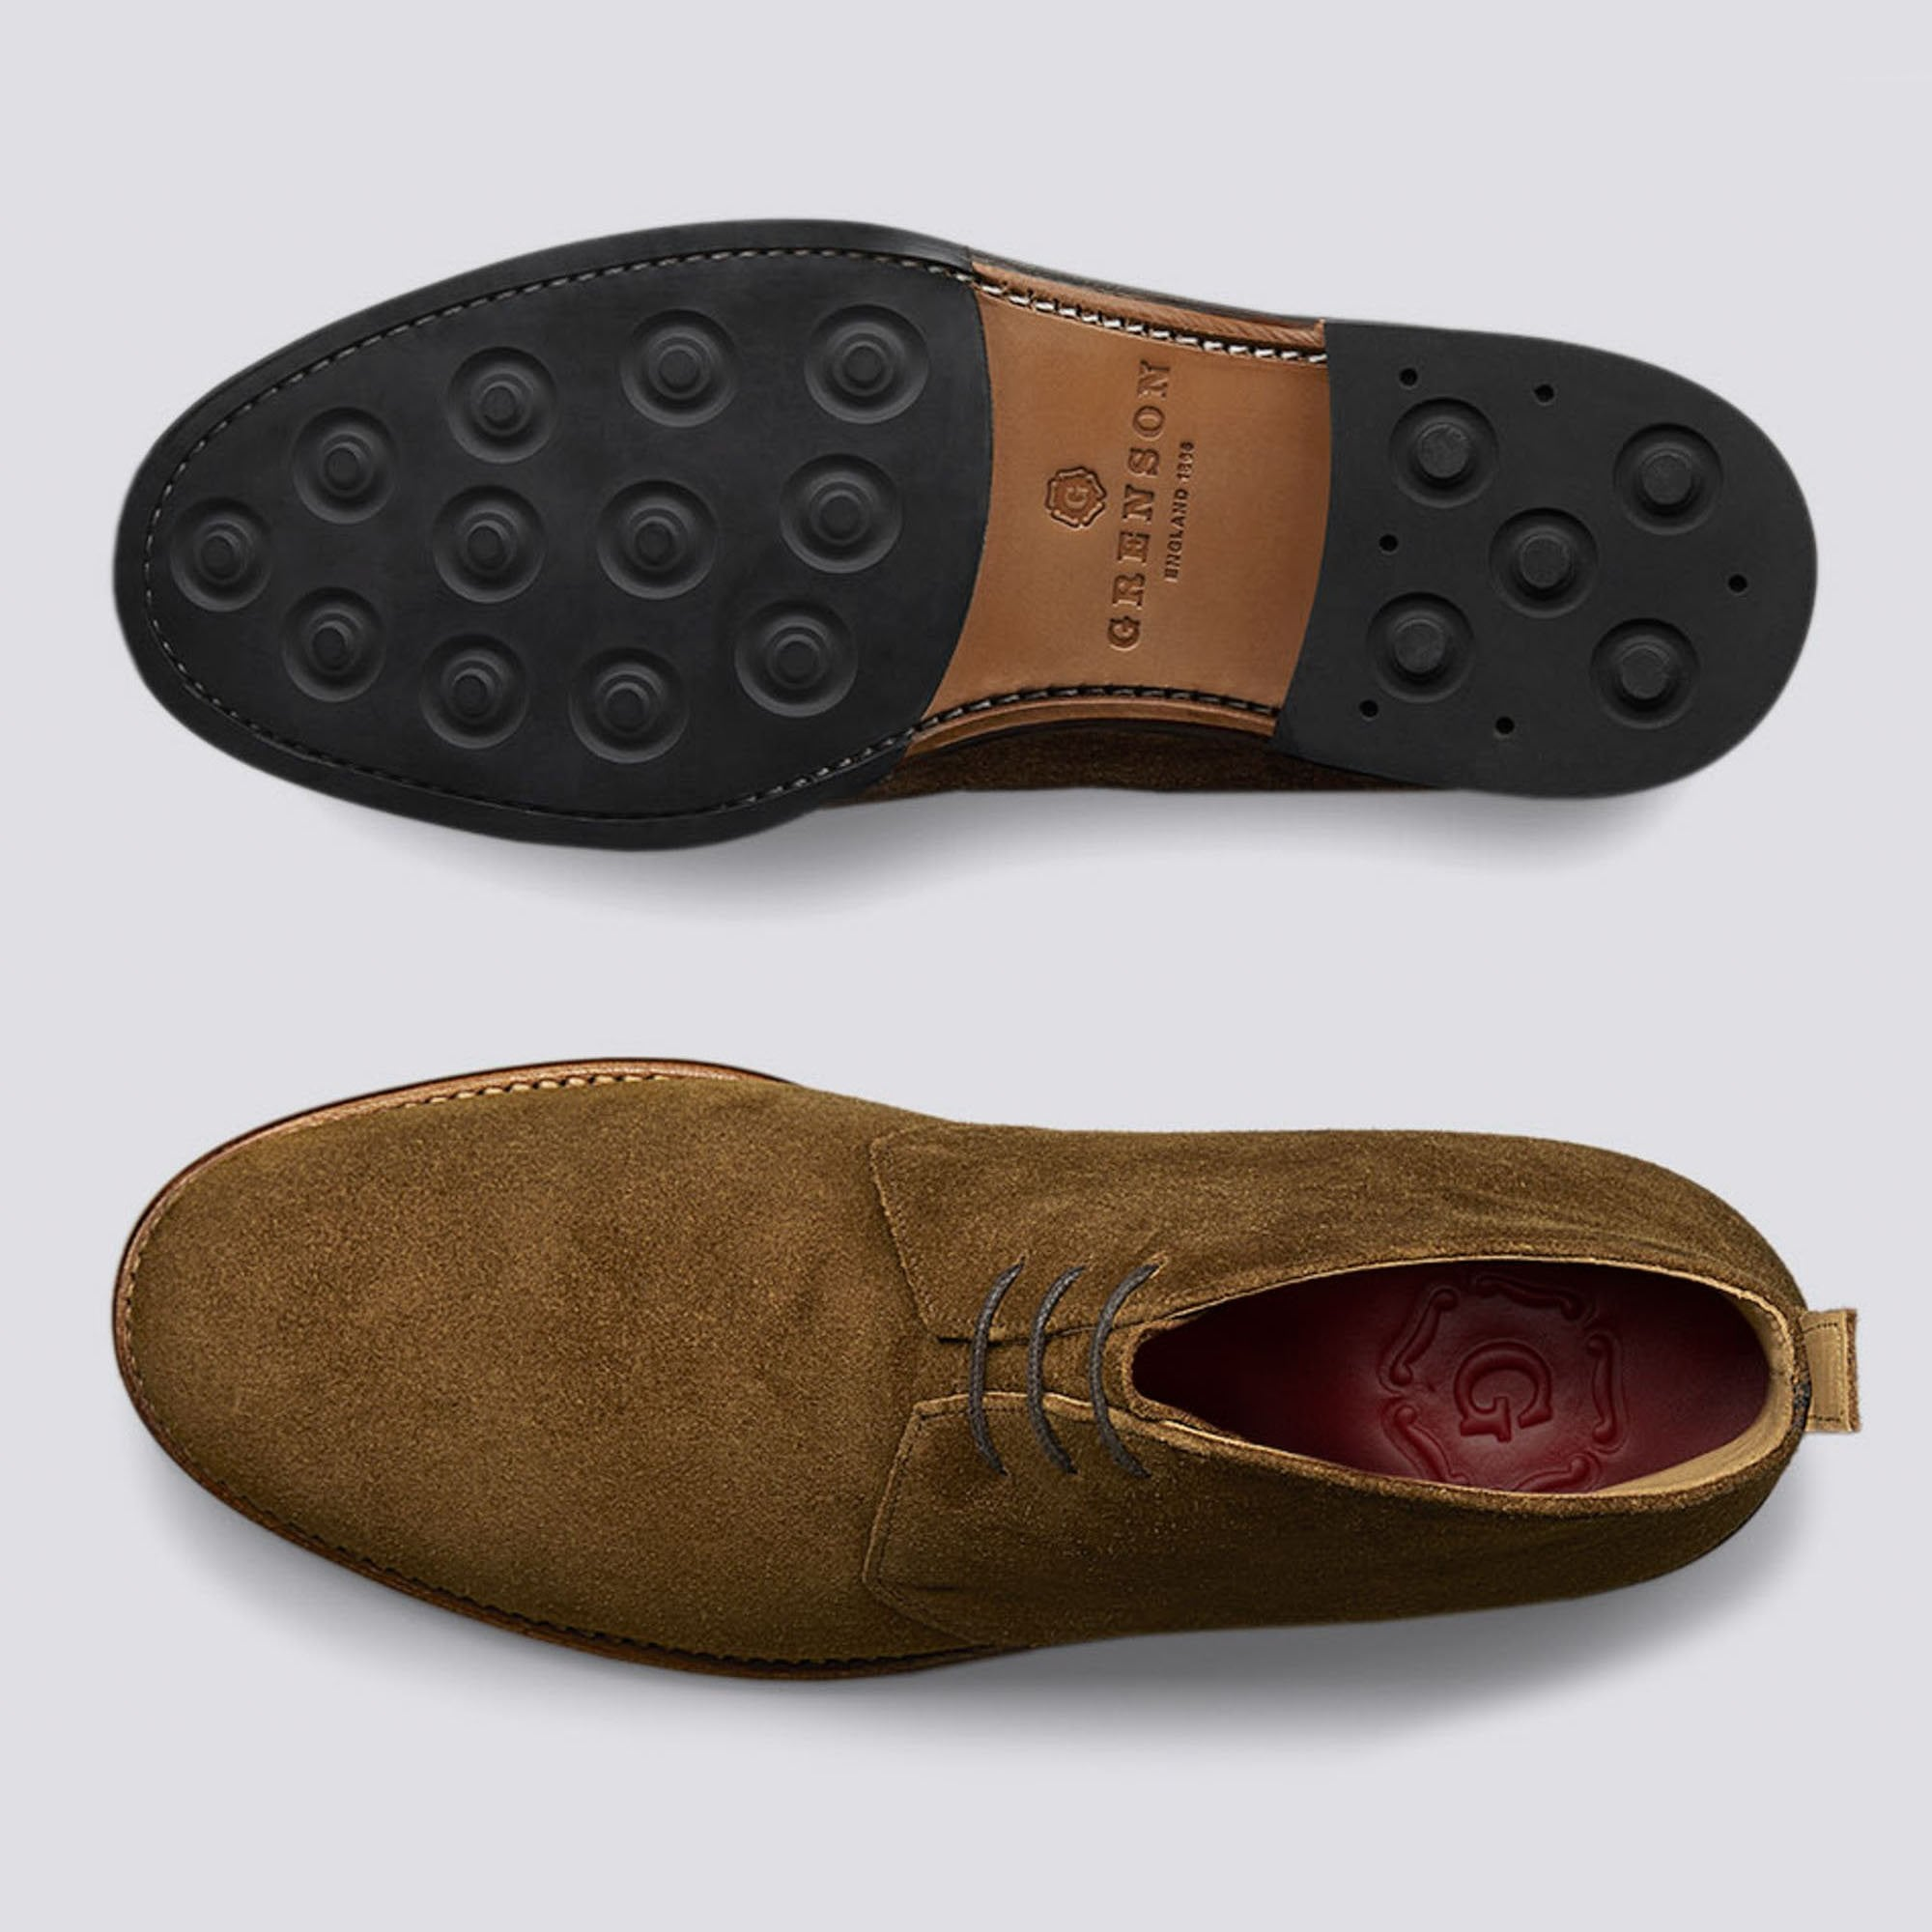 Wendell Suede Chukka Boot in Snuff